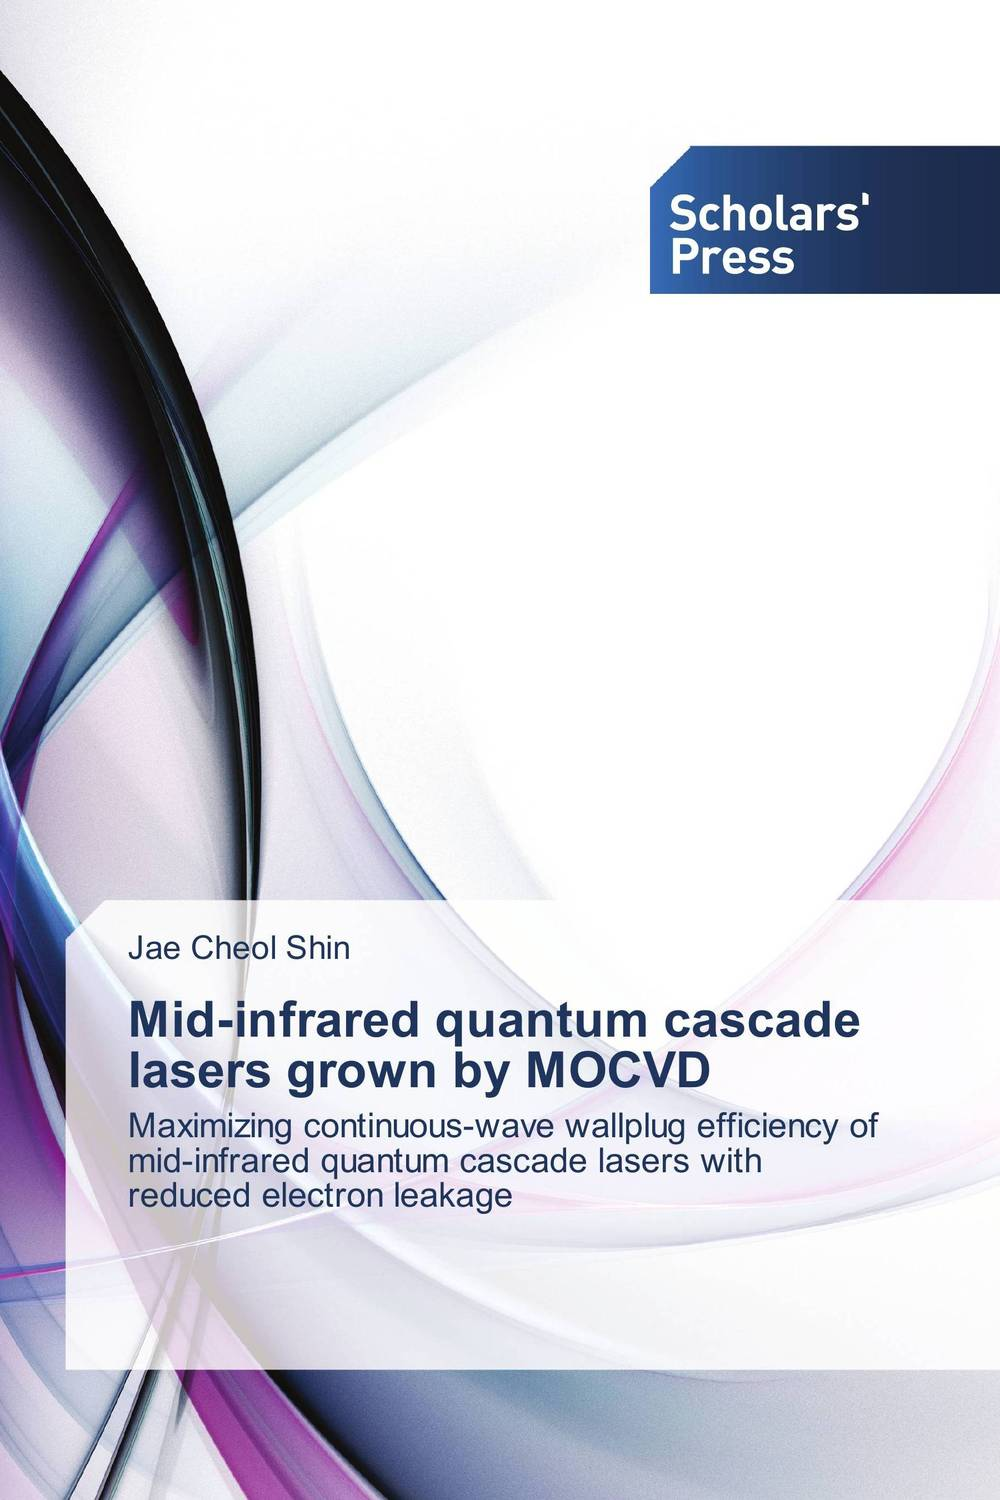 Mid-infrared quantum cascade lasers grown by MOCVD quantum structures